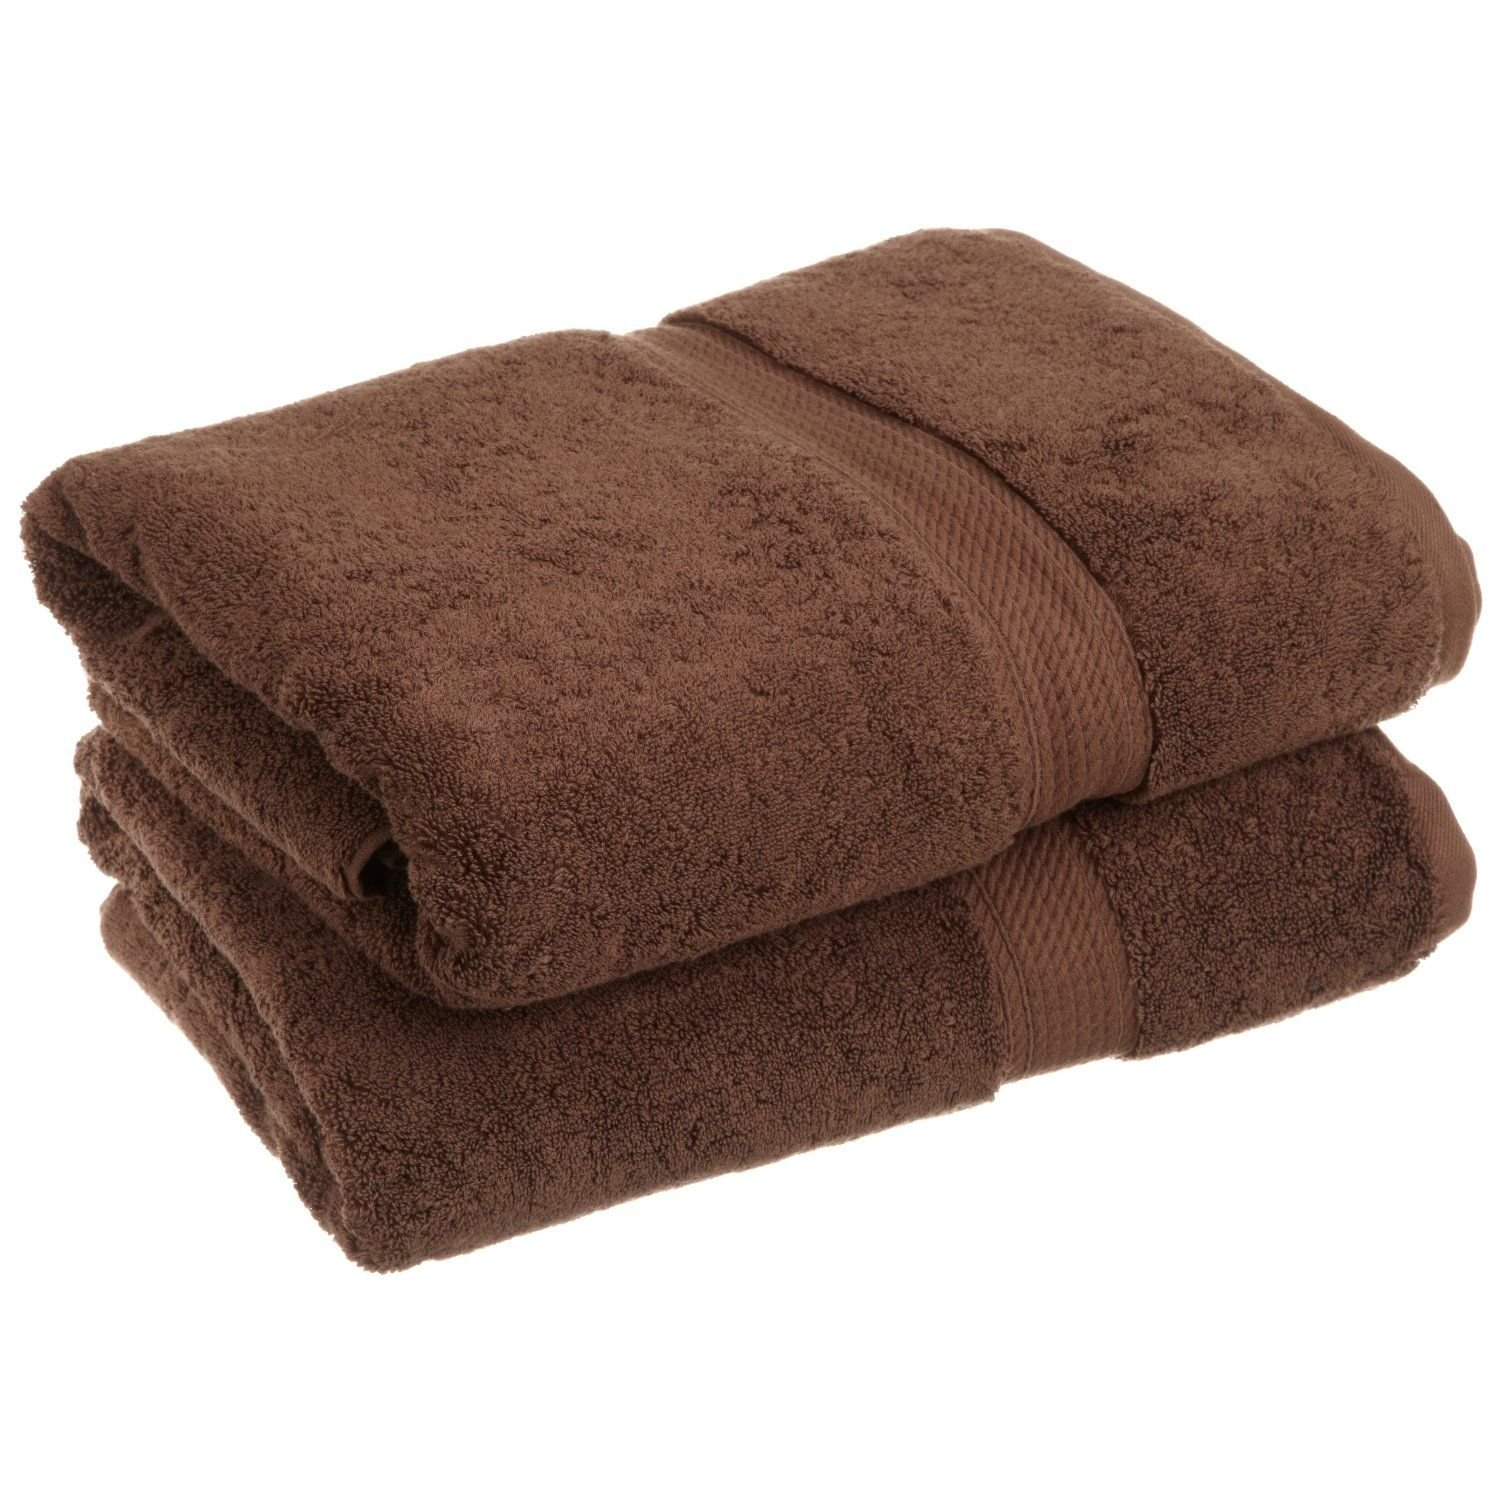 Superior 900 GSM Luxury Bathroom Towels, Made of 100% Premium Long-Staple Combed Cotton, Set of 2 Hotel & Spa Quality Bath Towels - Chocolate, 30'' x 55'' each